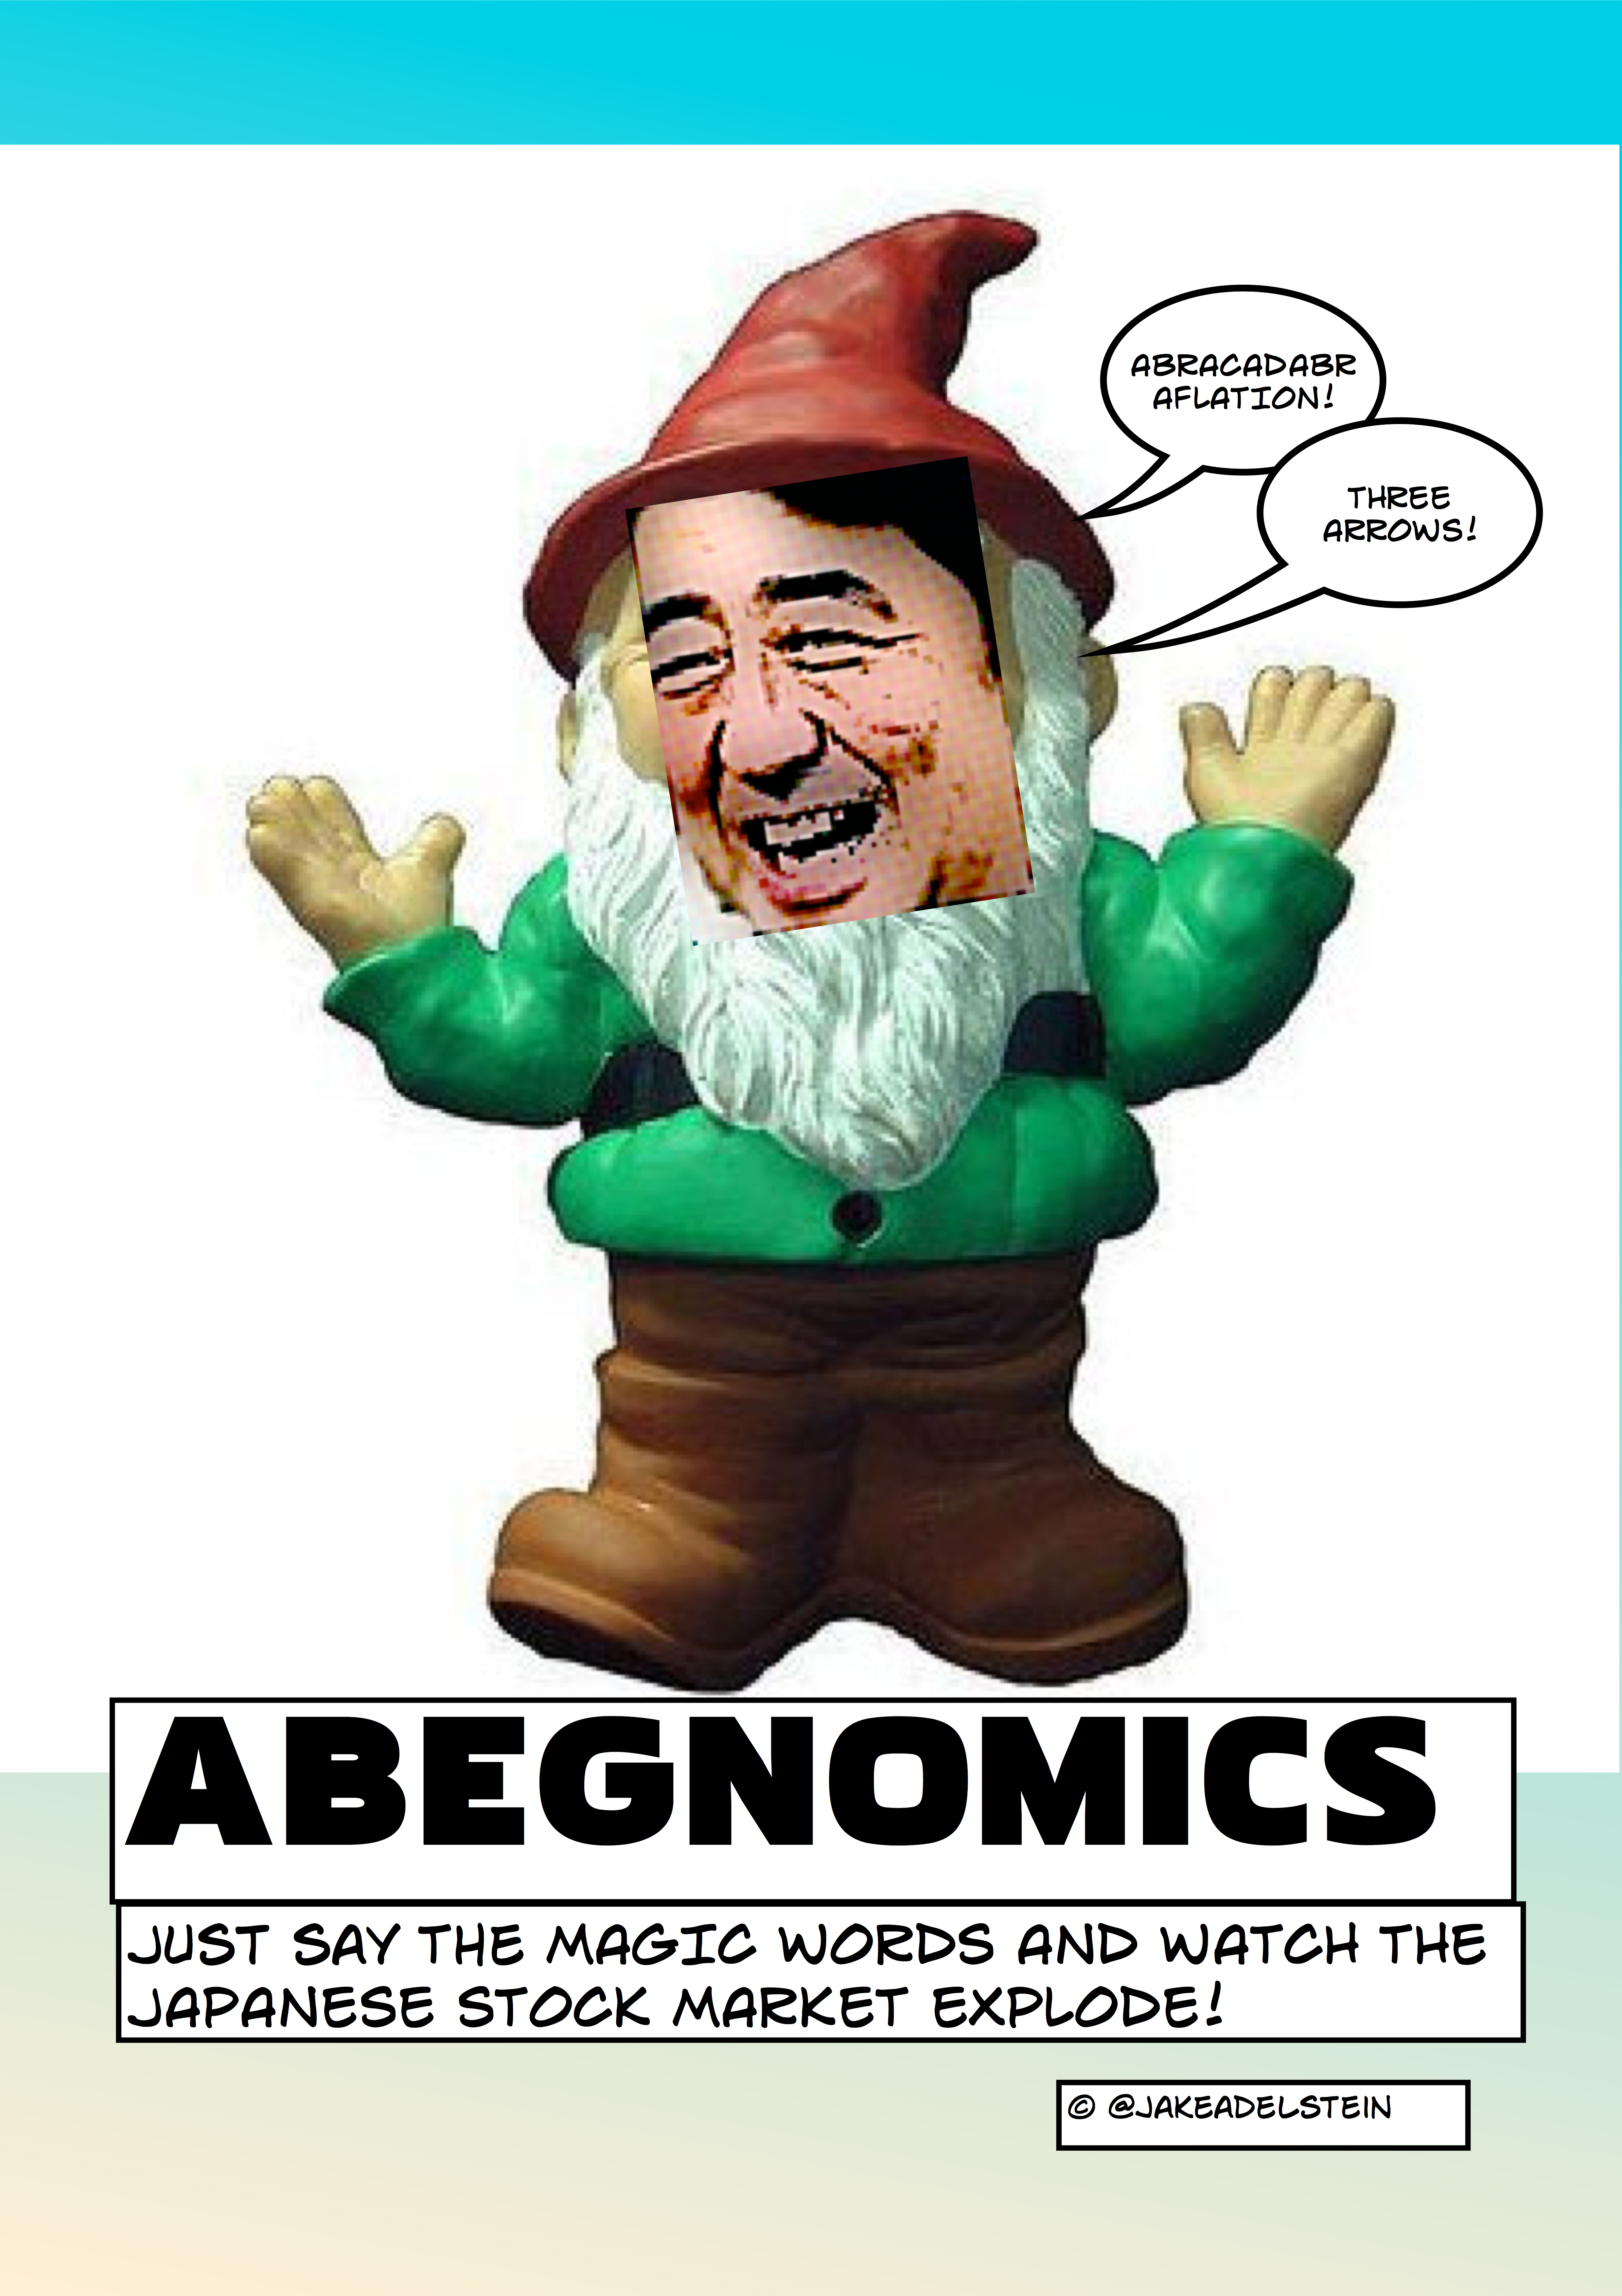 ABEGNOMICS: The Most Magical And Mysterious Economic Policy In The World!